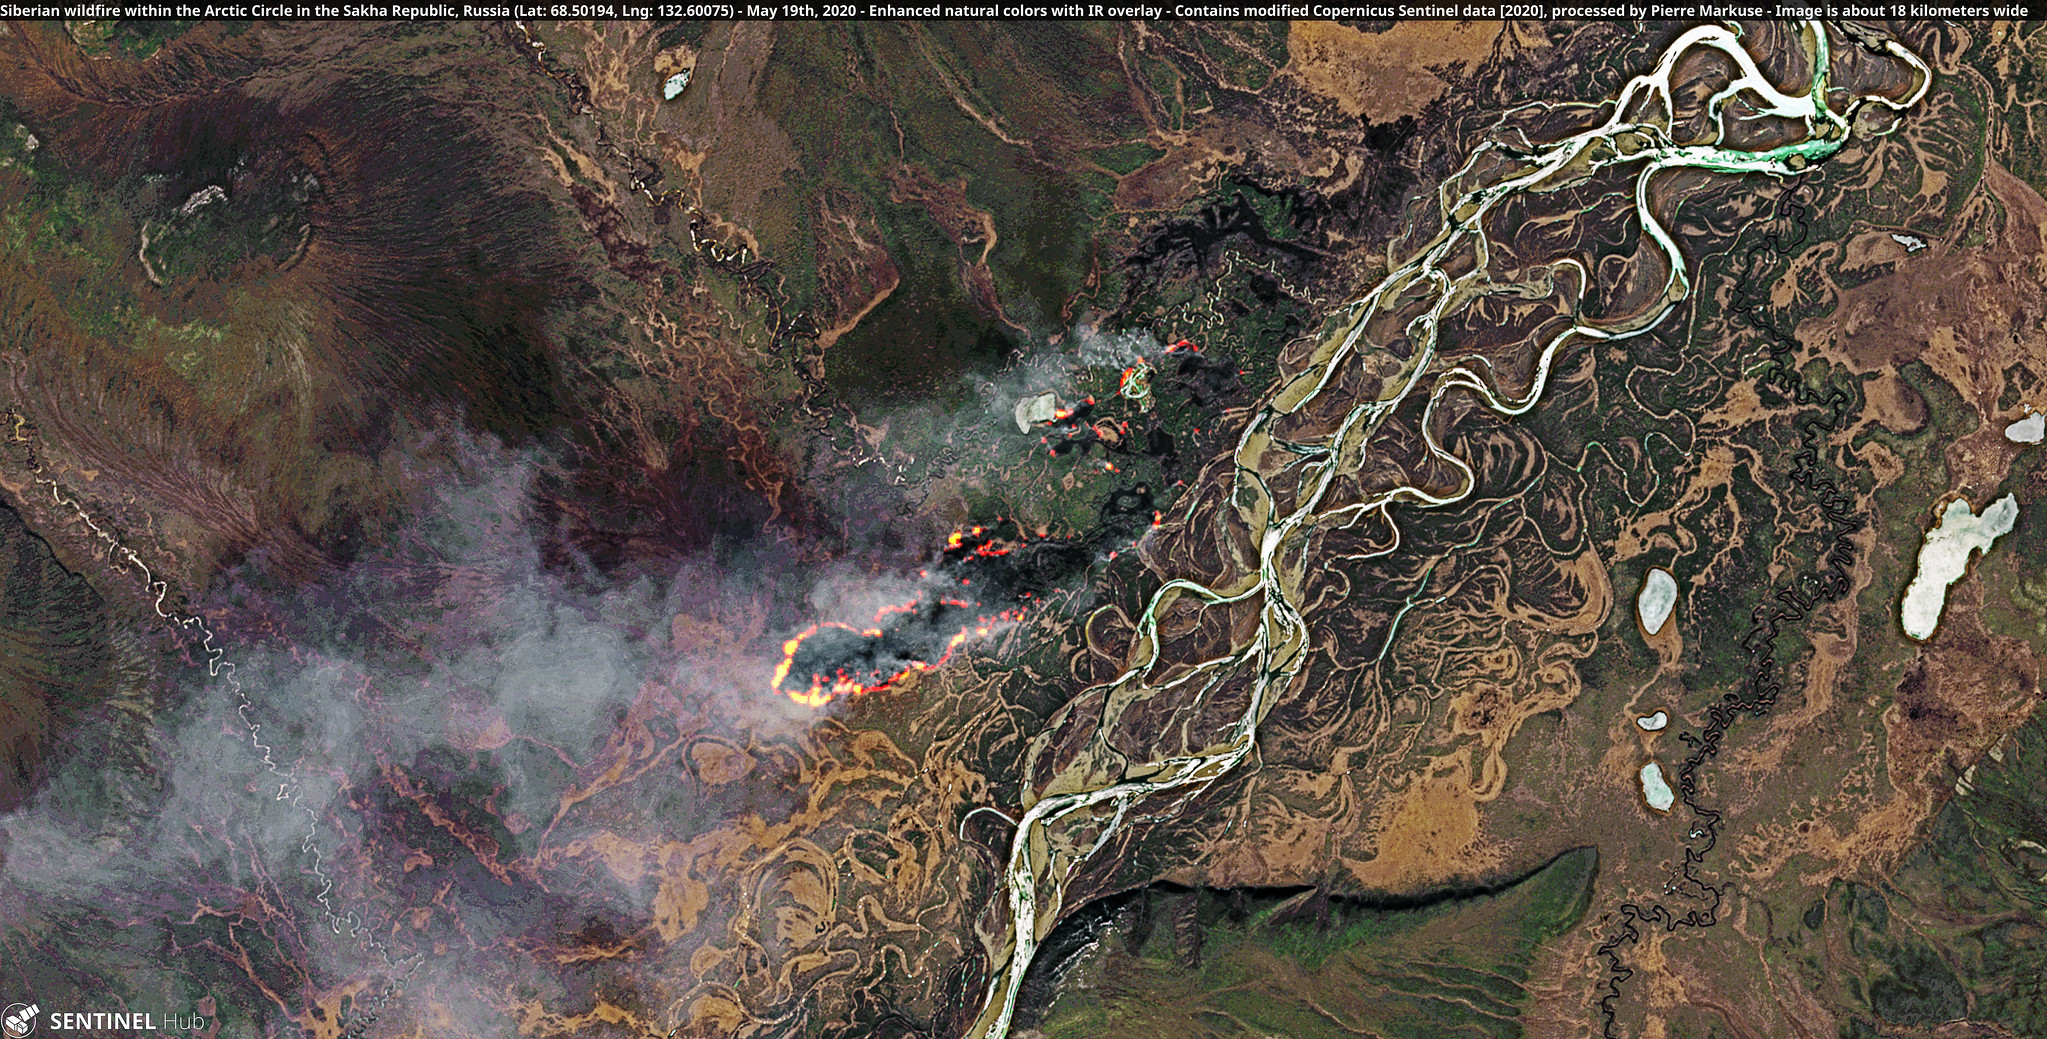 A full-colour satellite image of multiple fires burning in a forested river valley